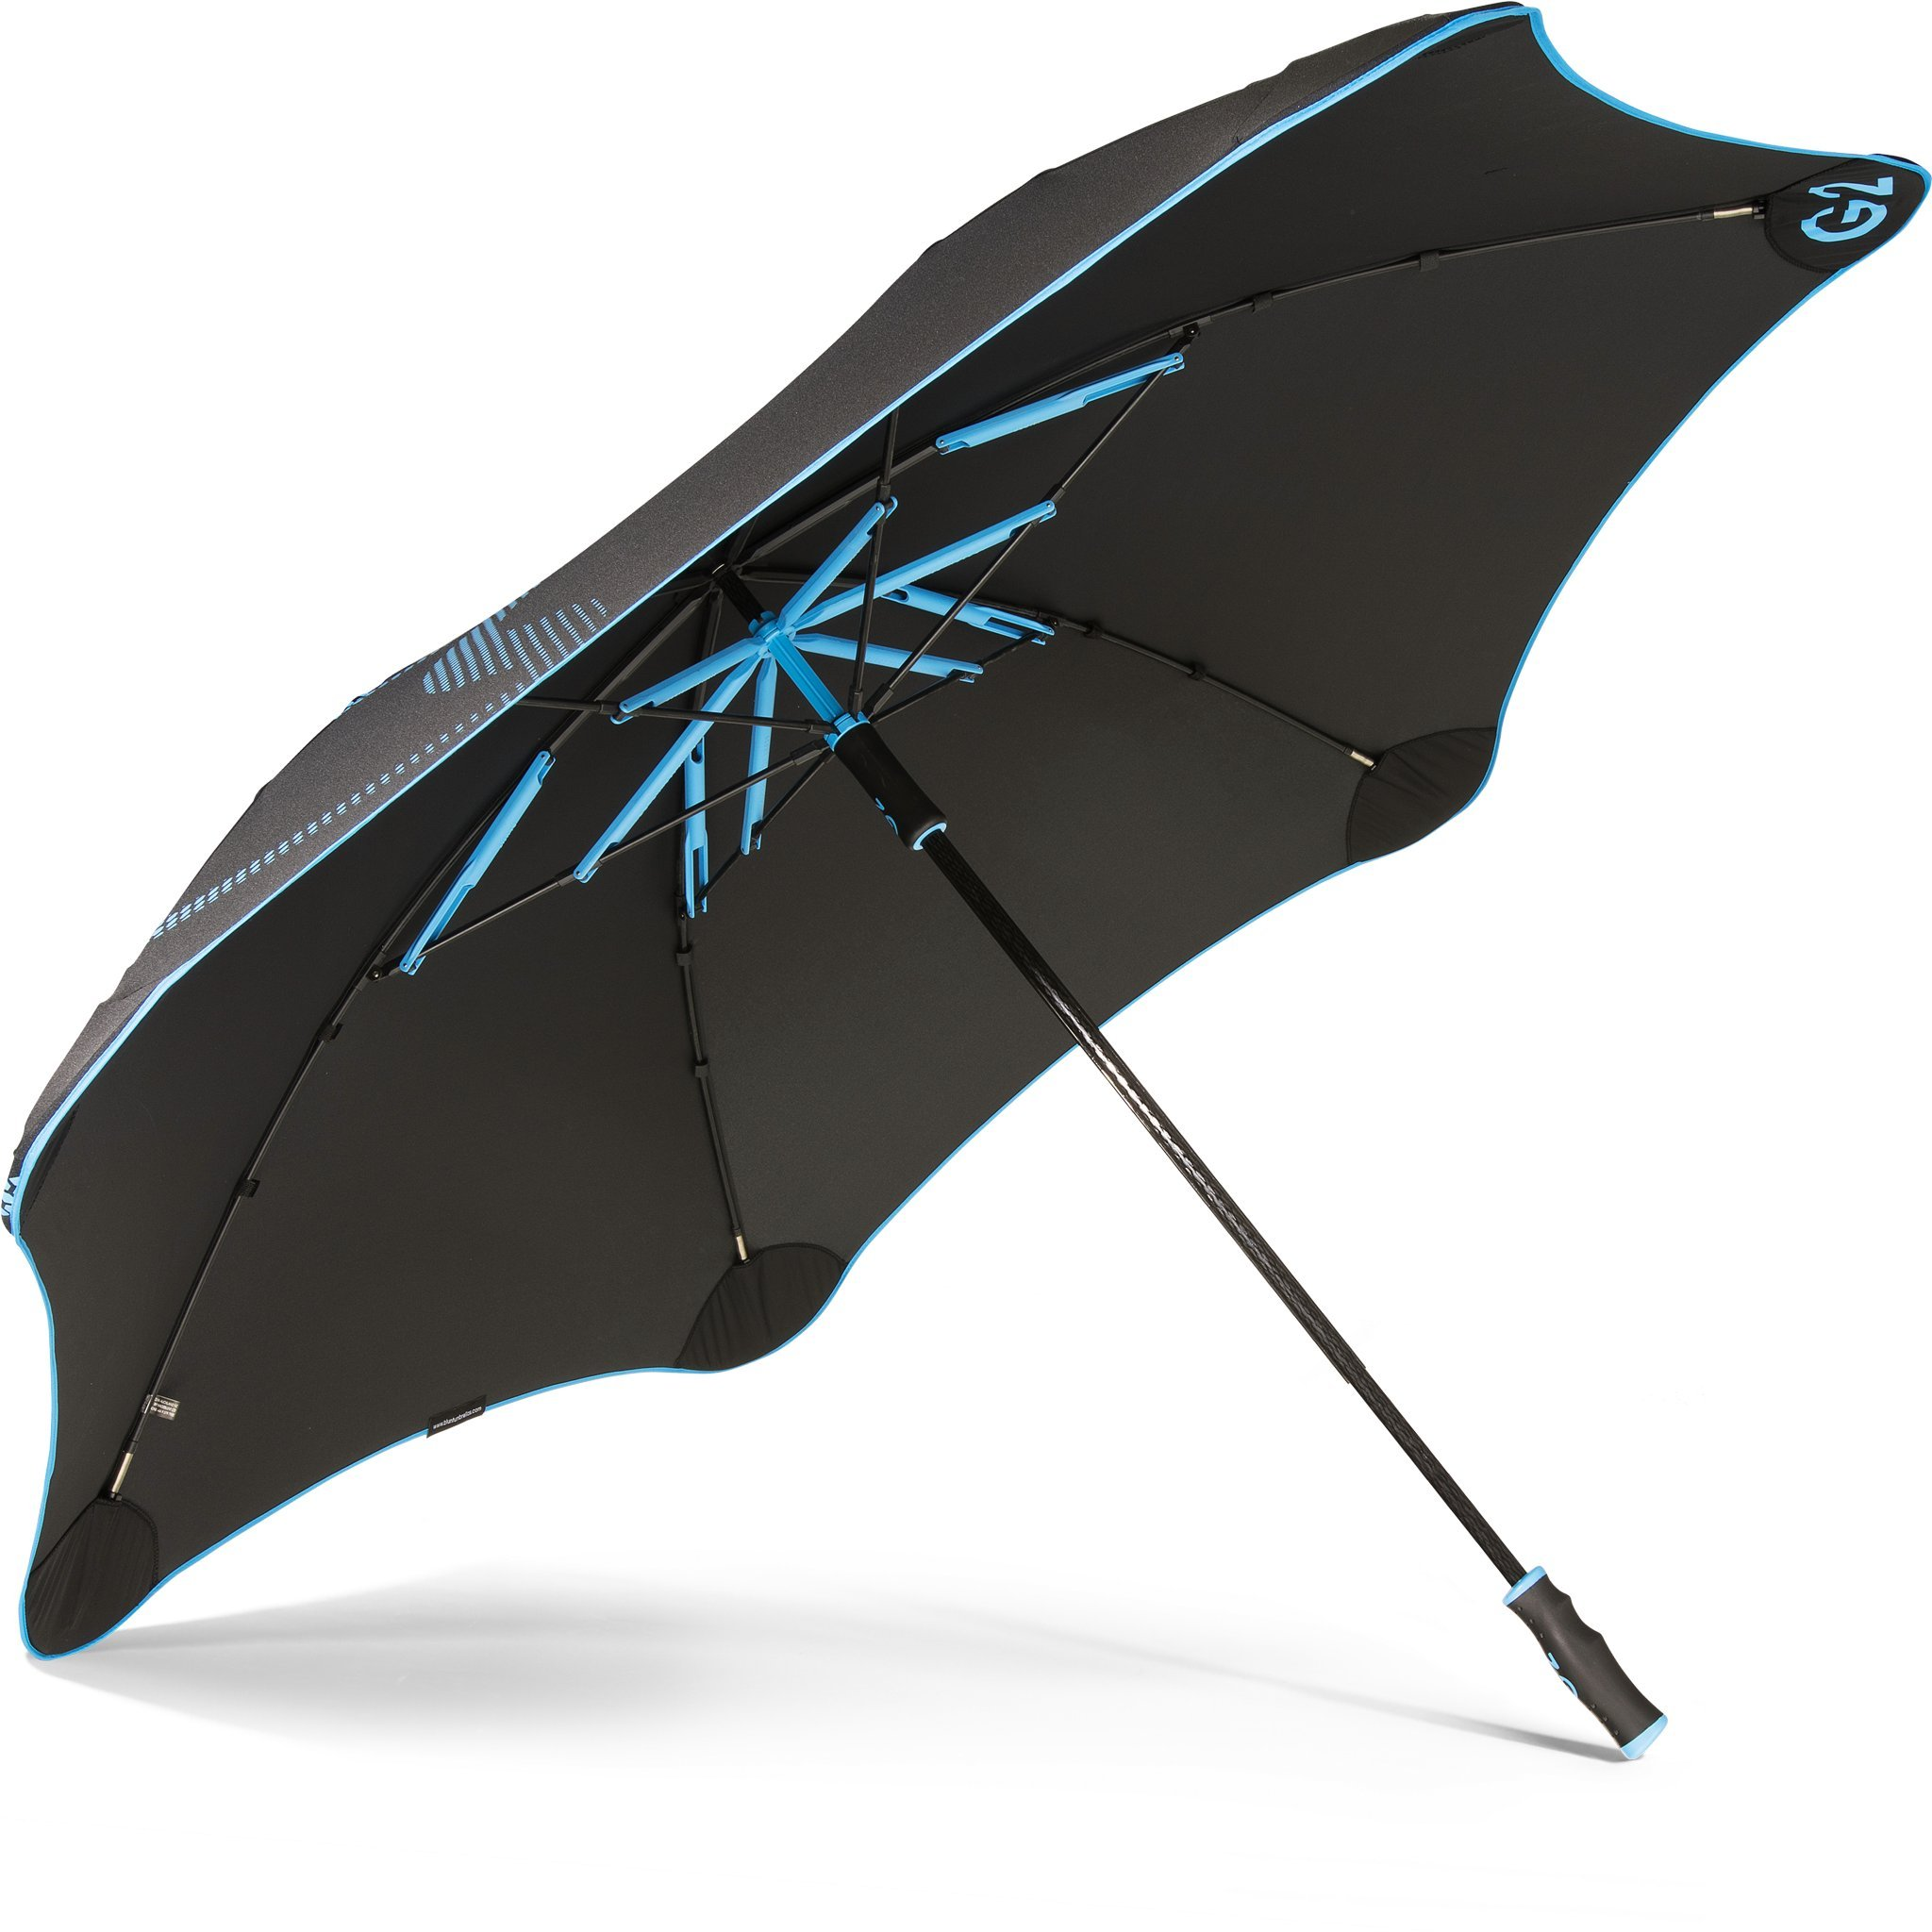 "BLUNT Golf Umbrella with 57.5"" Canopy and Wind Resistant Radial Tensioning System - Aqua Blue"